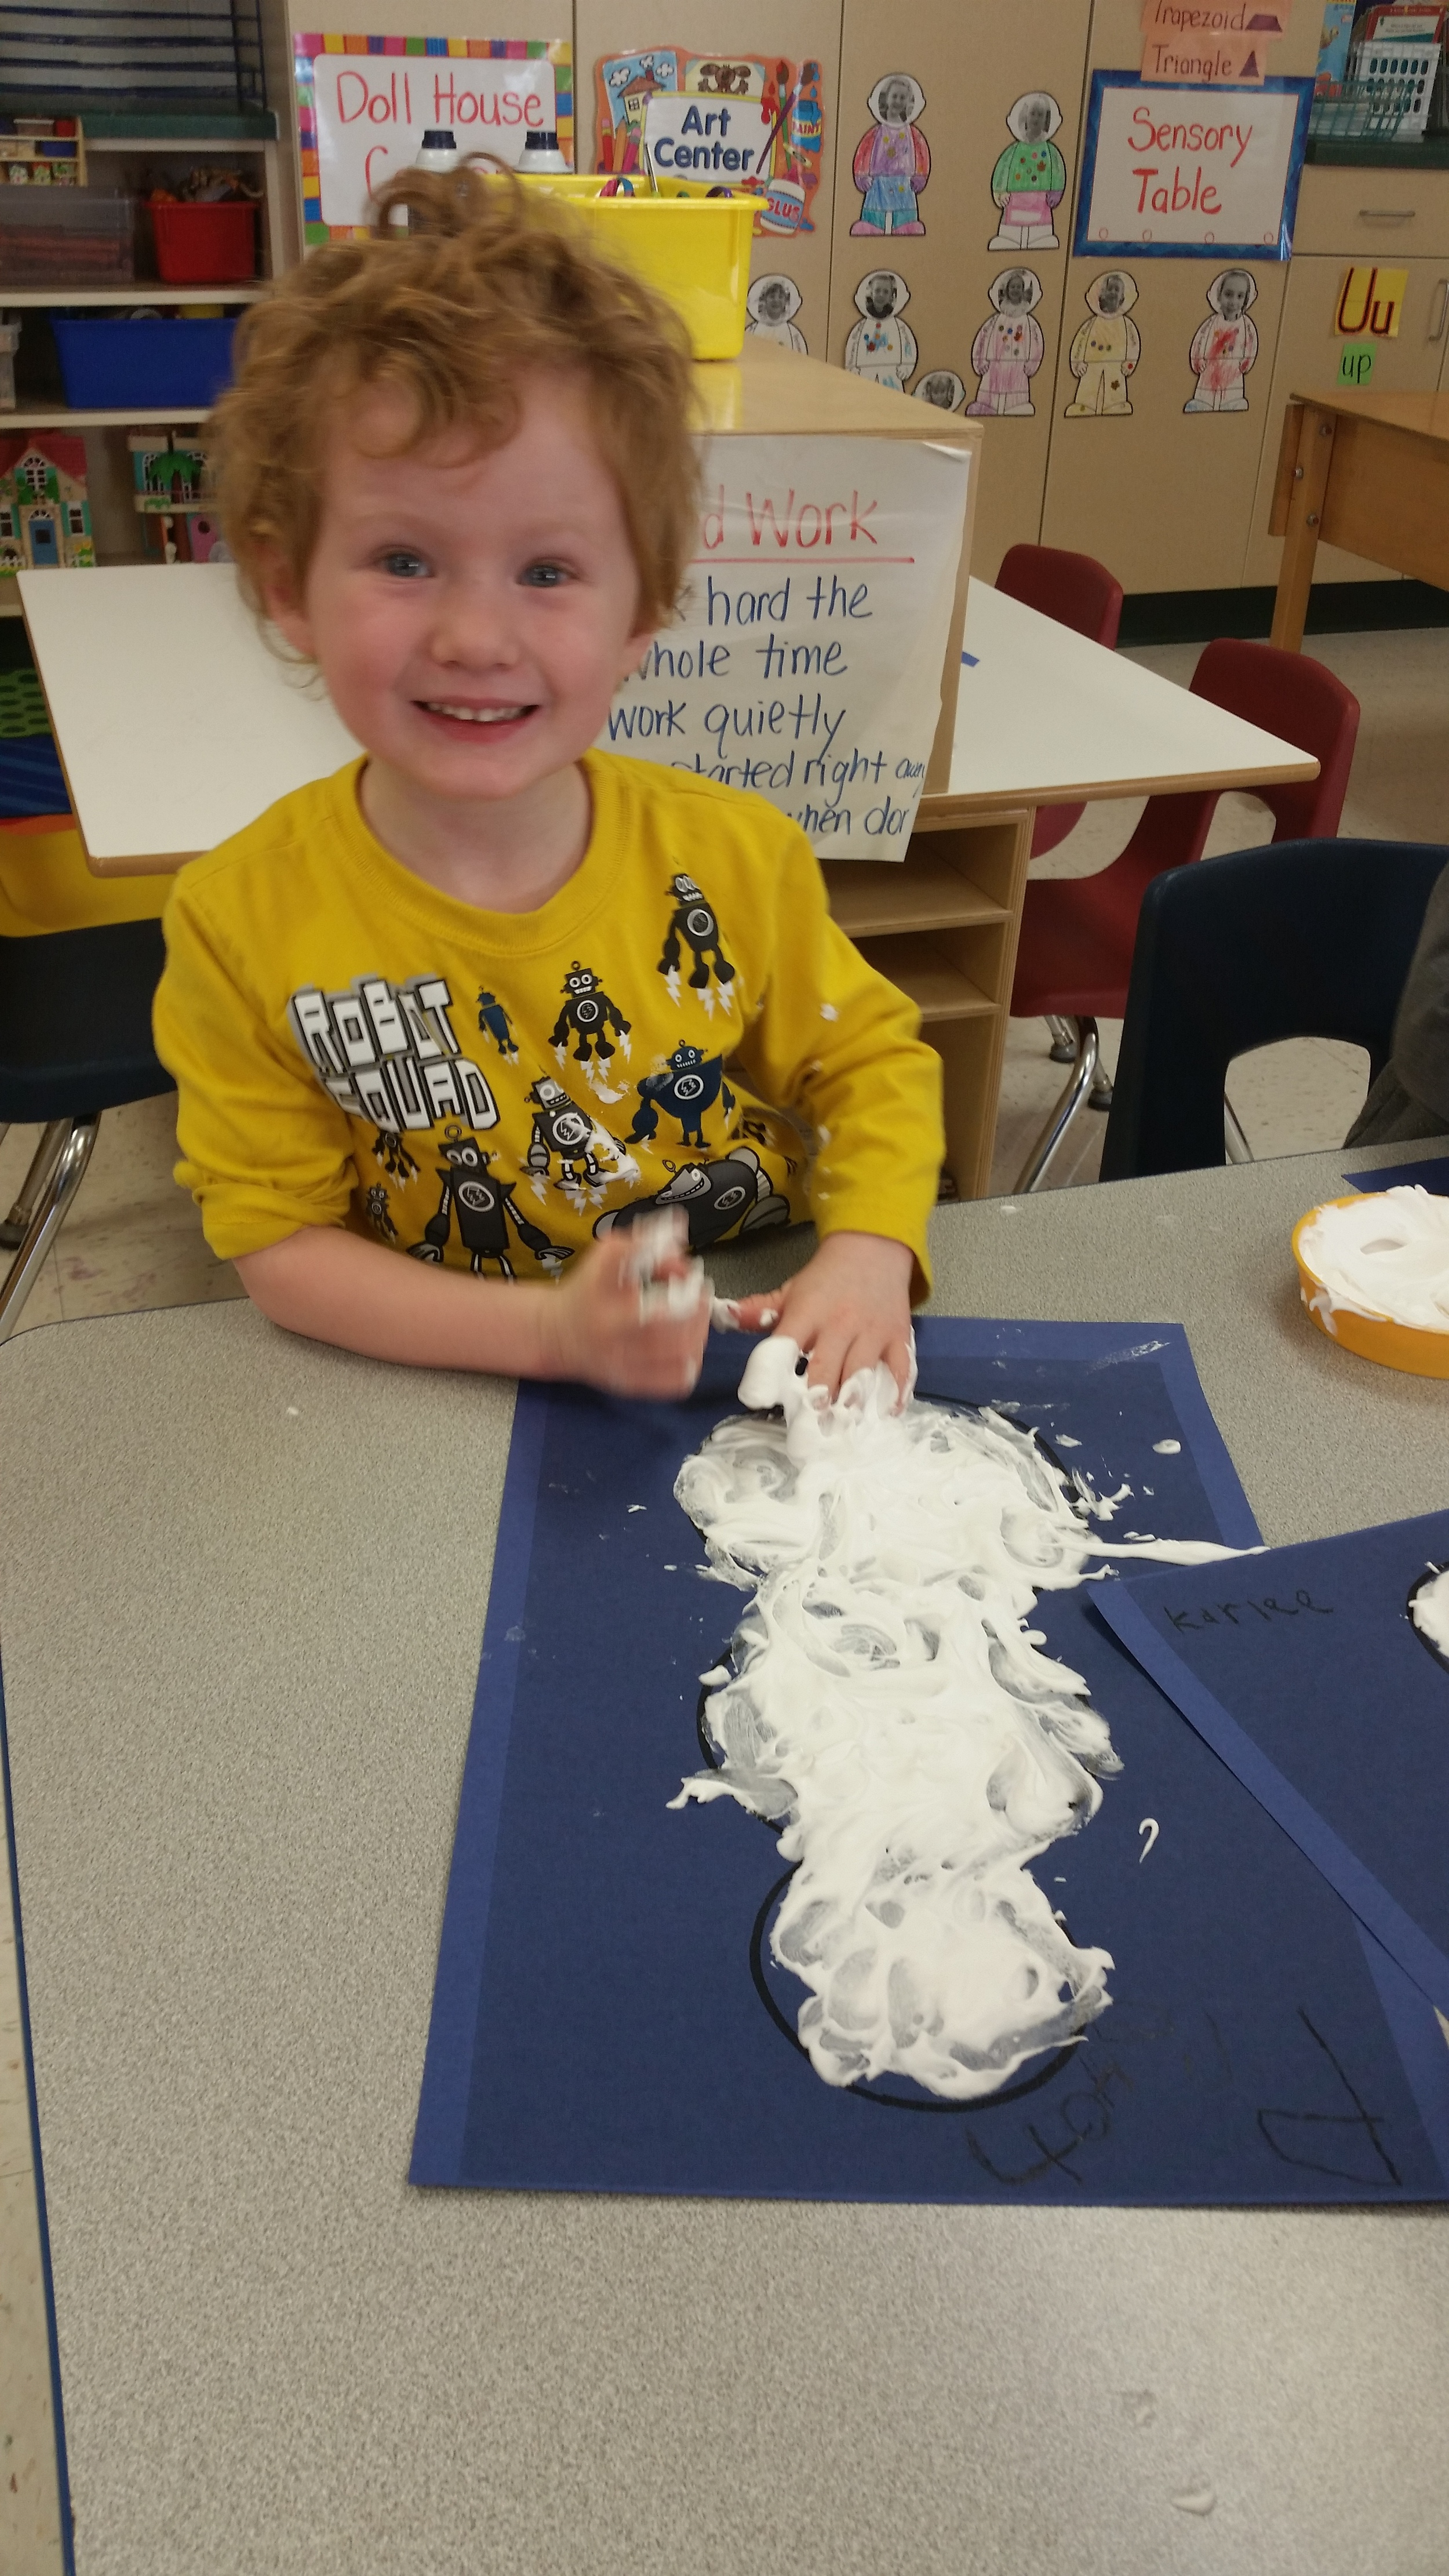 finger painting with a mixture of shaving cream and glue